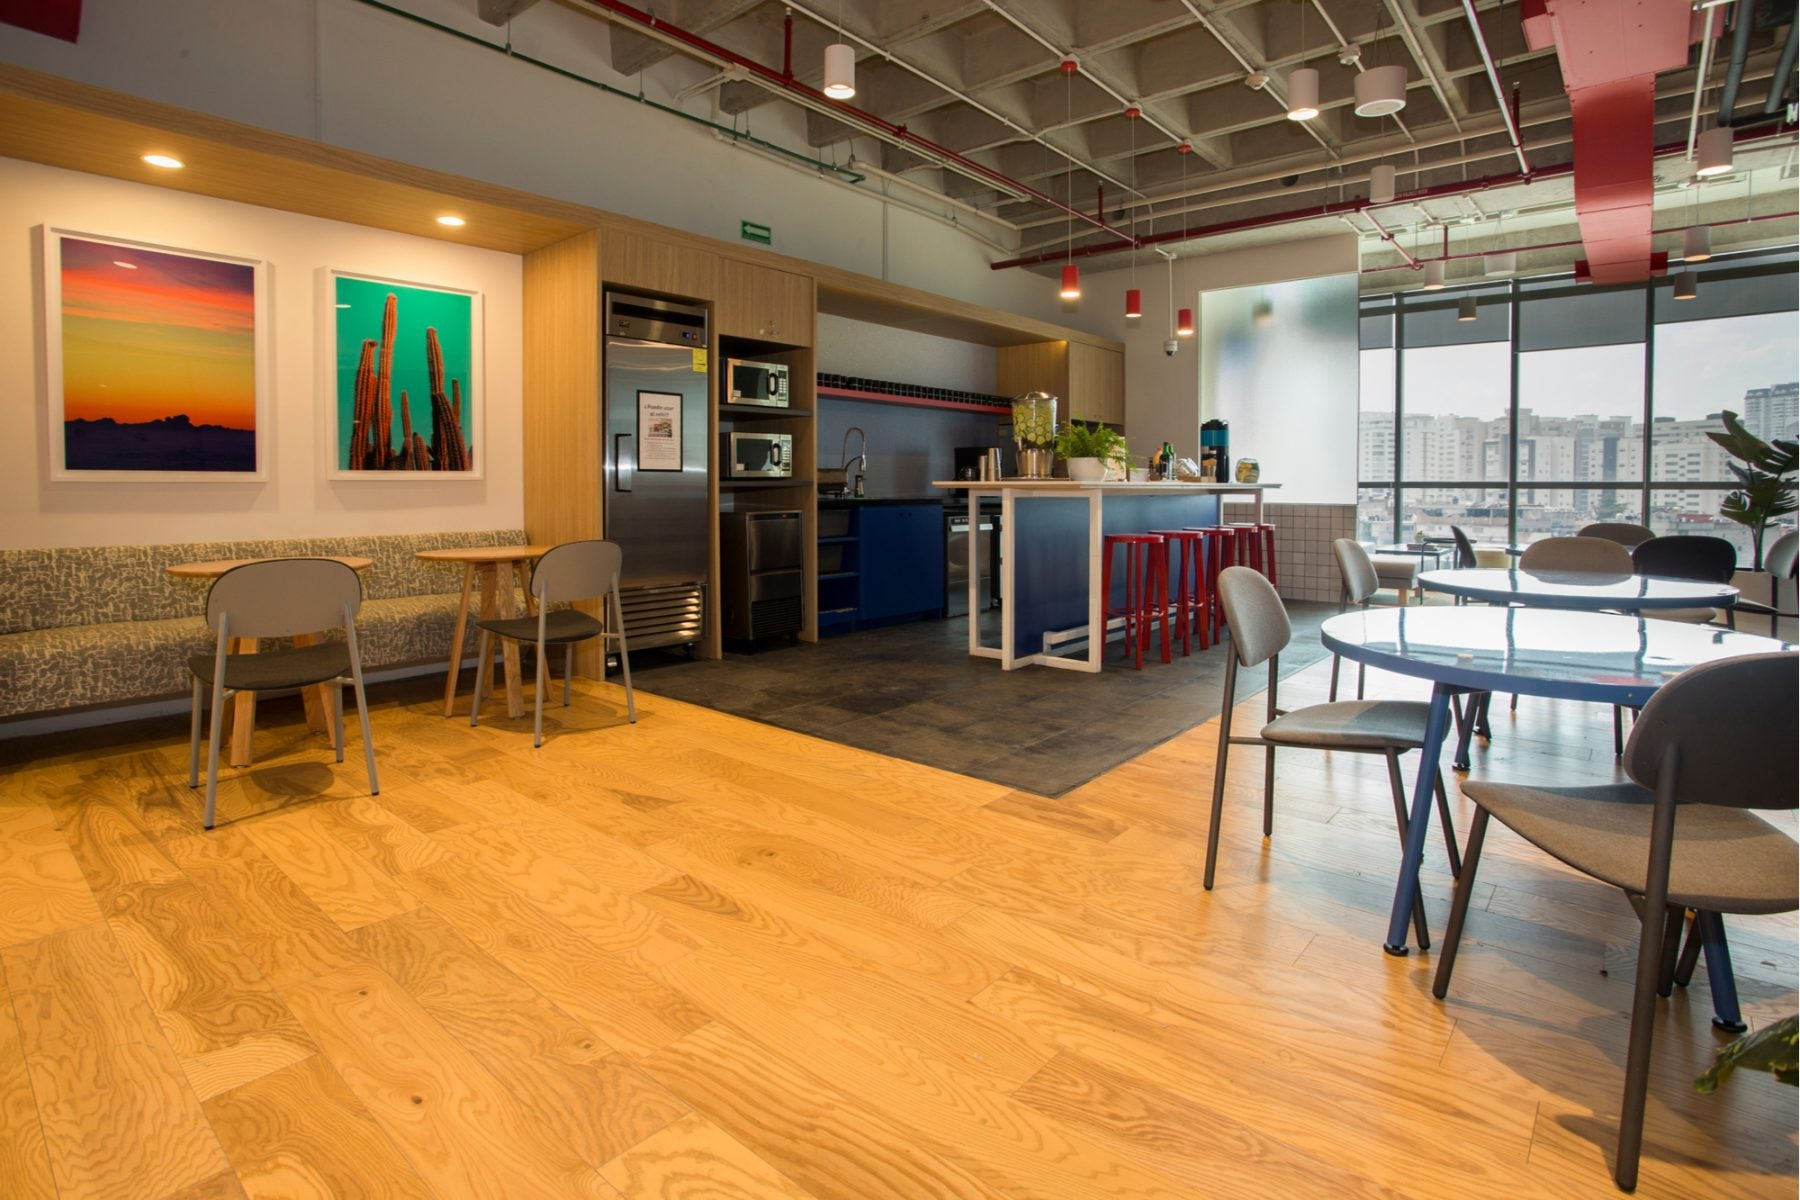 Reminder: Don't pay for coworking space — Save with the Amex Business Platinum, and write off the annual fee